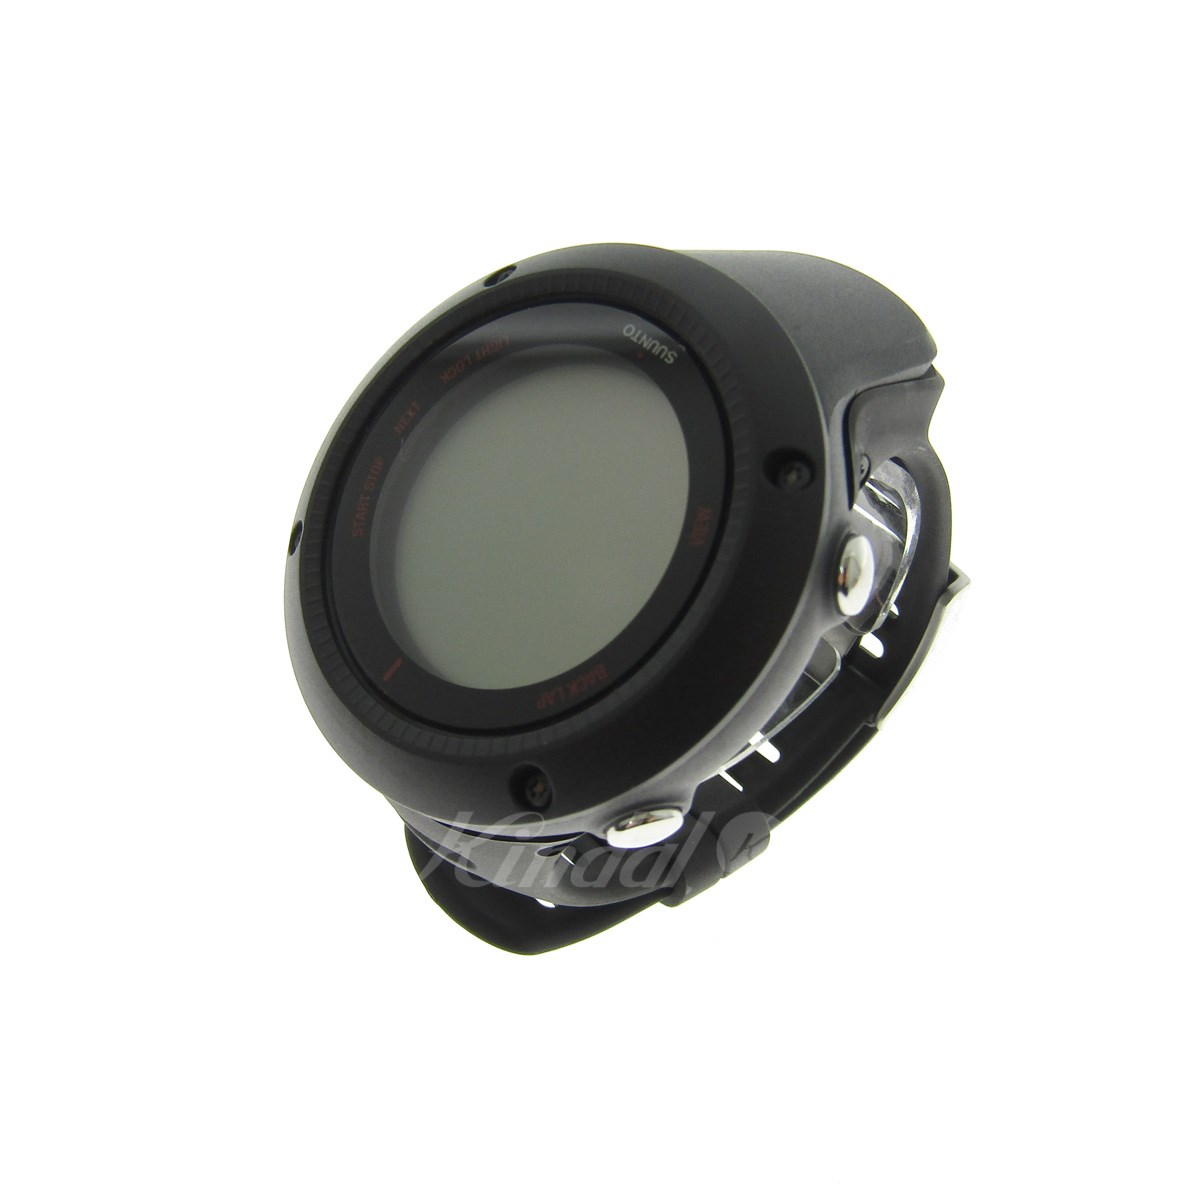 【中古】SUUNTO AMBIT3 RUN HR 腕時計 【送料無料】 【000025】 【KIND1489】